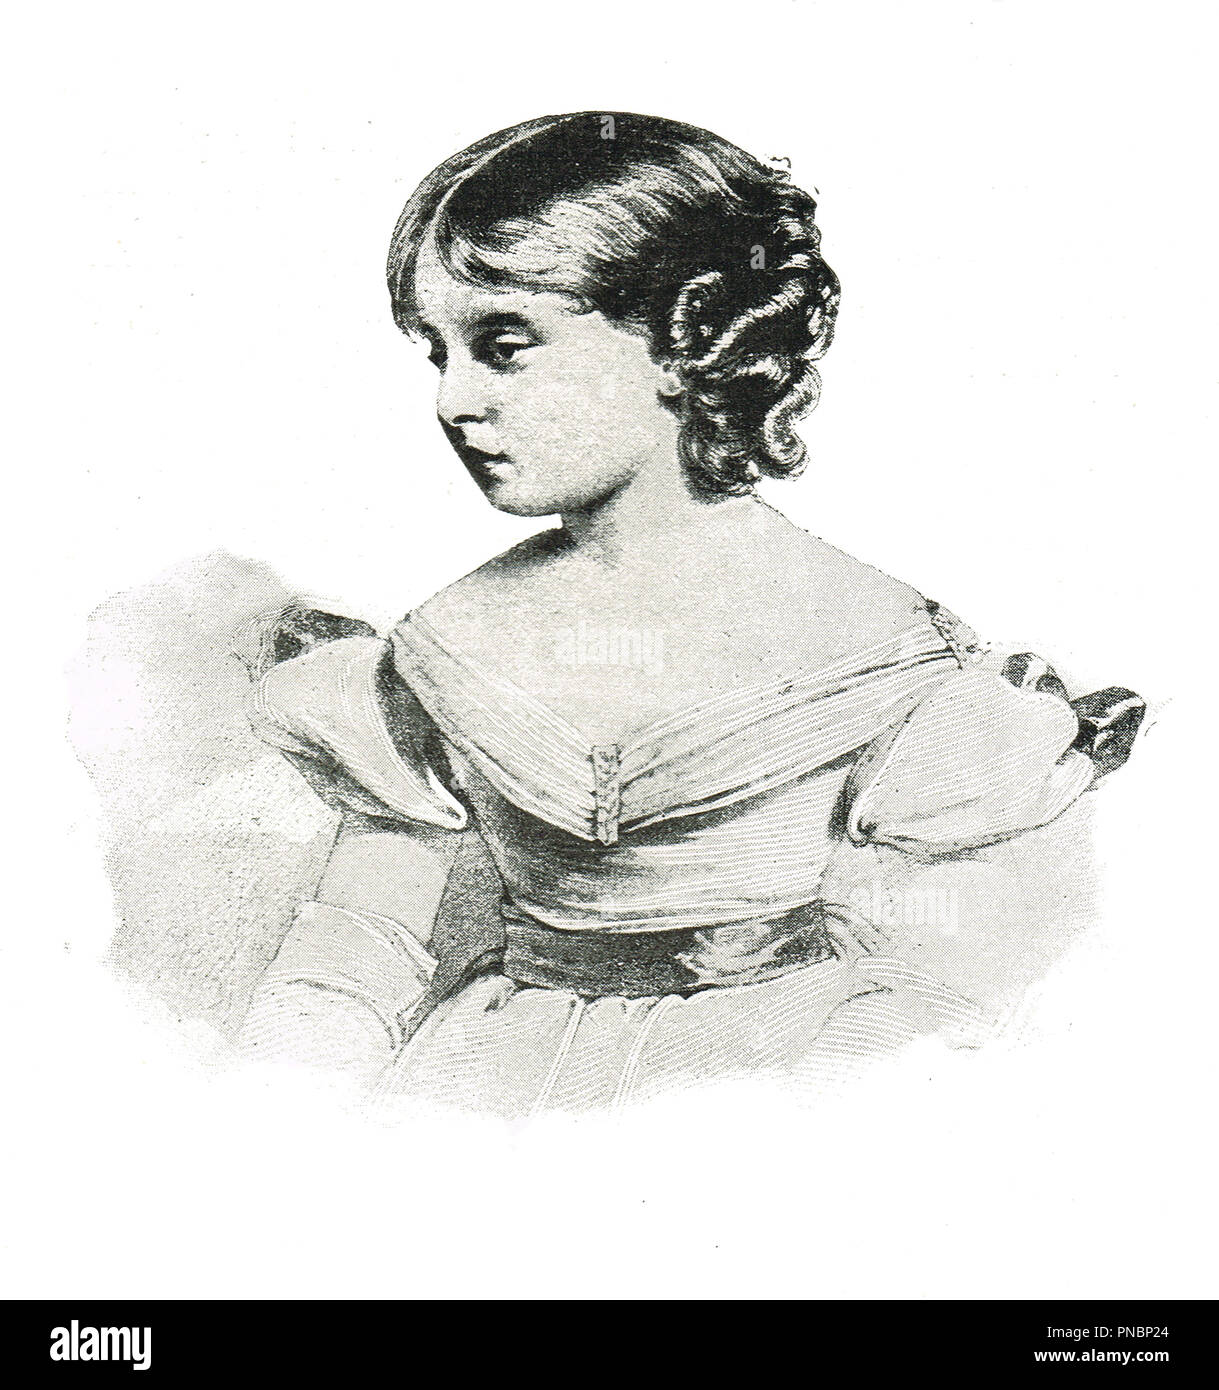 Princess Victoria, aged 10, future Queen Victoria as a child.   Later to be Queen of the United Kingdom of Great Britain and Ireland, and Empress of India - Stock Image